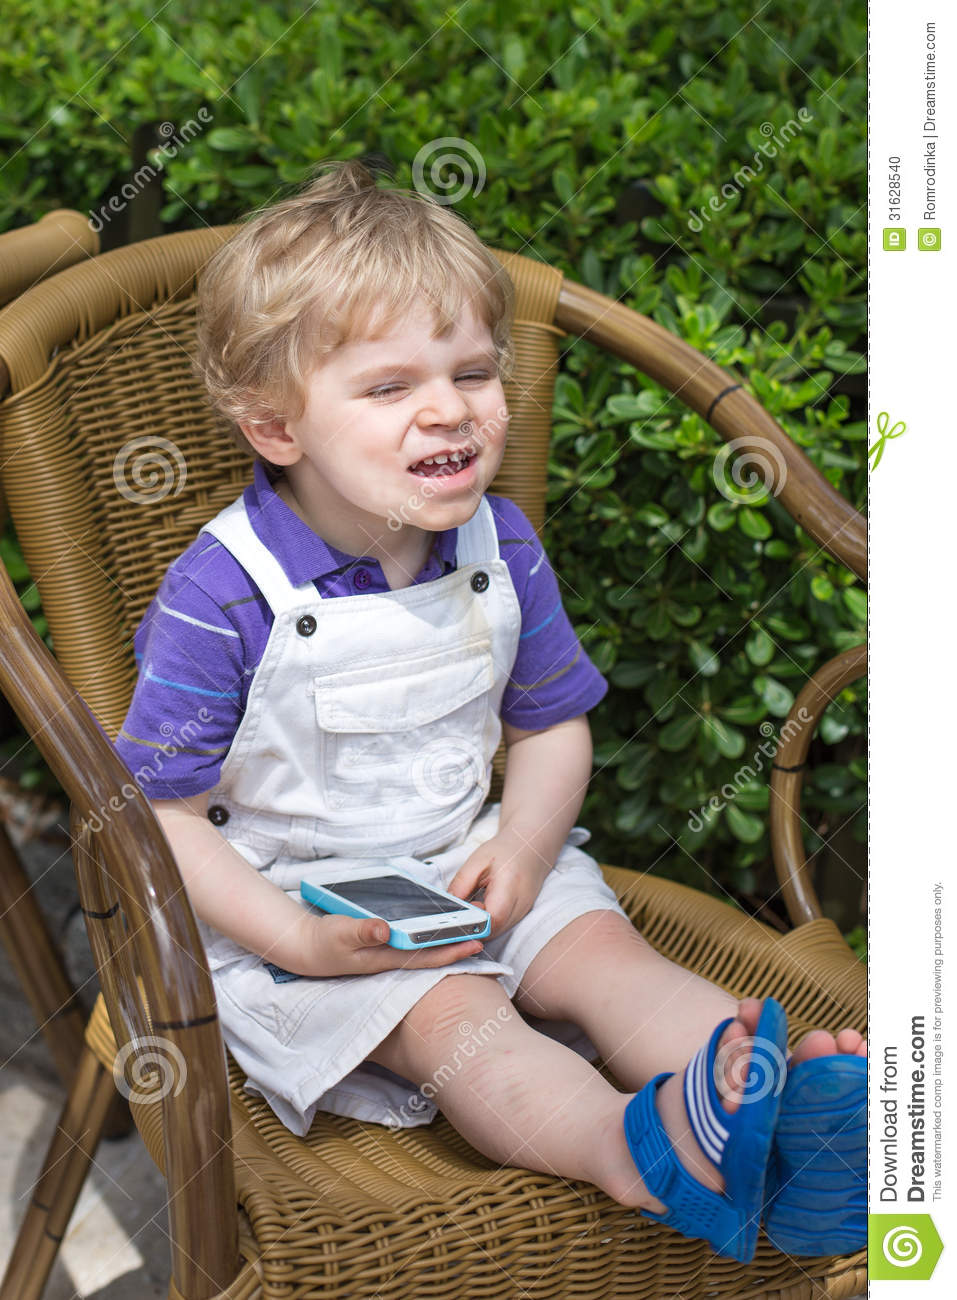 fe130e276916 Little Blonde Toddler Boy Playing With Cell Phone Stock Photo ...